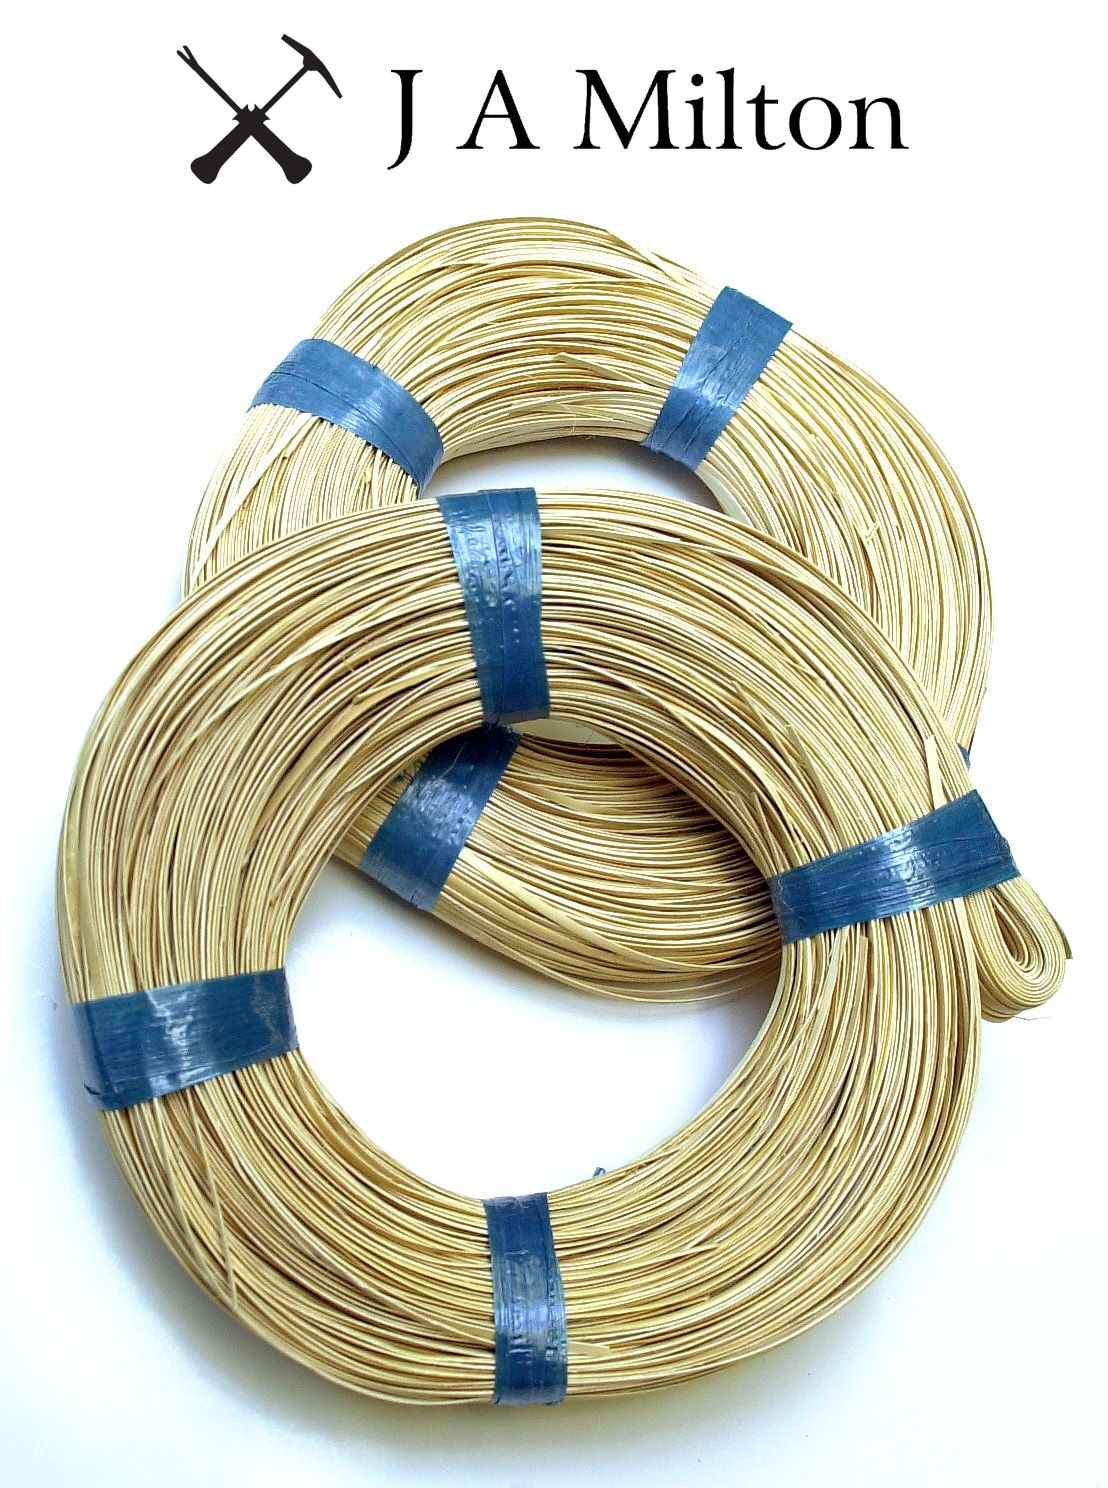 Weaving Cane For Chairs To Create Or Repair Your Chair Canes. Available In  No 1   1.7 Mm Wide, No 2   2.1 Mm Wide, No 3   2.5 Mm Wide Or No 4   3 Mm  Wide.